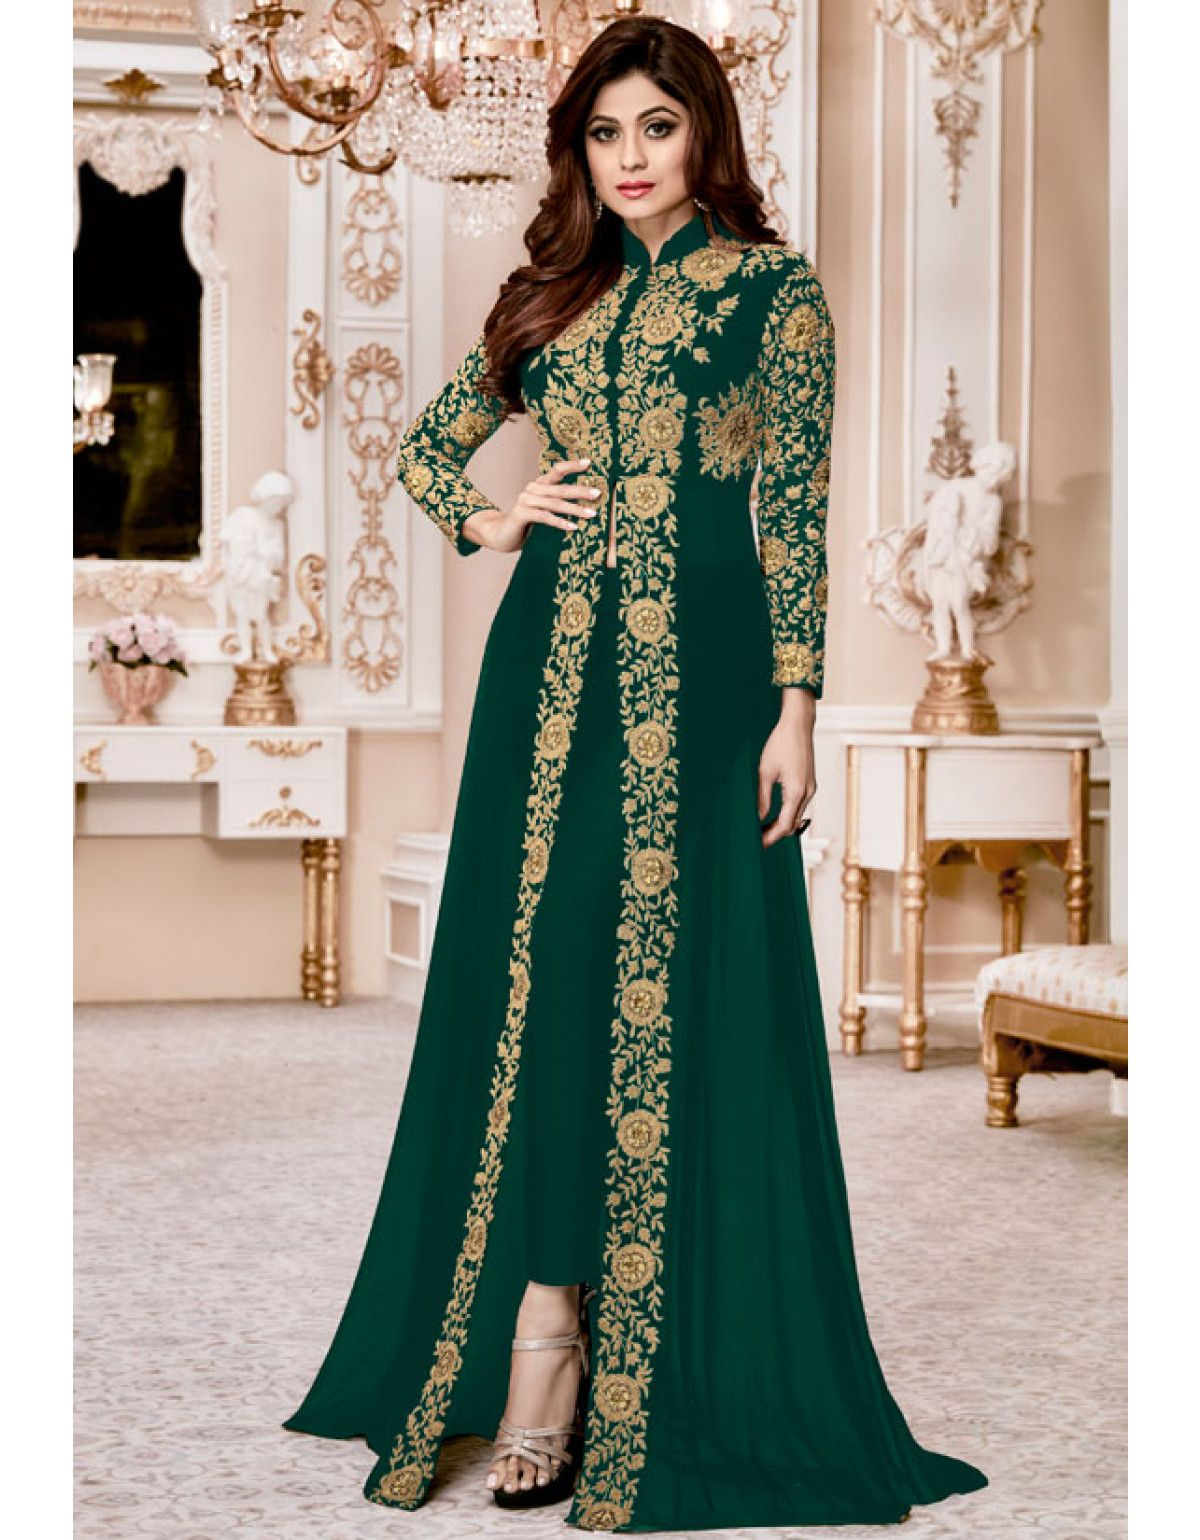 4971b775a9 Shamita Shetty Emerald Green Pant Kameez Designer Salwar Suits, Anarkali  Suits, Suits For Women